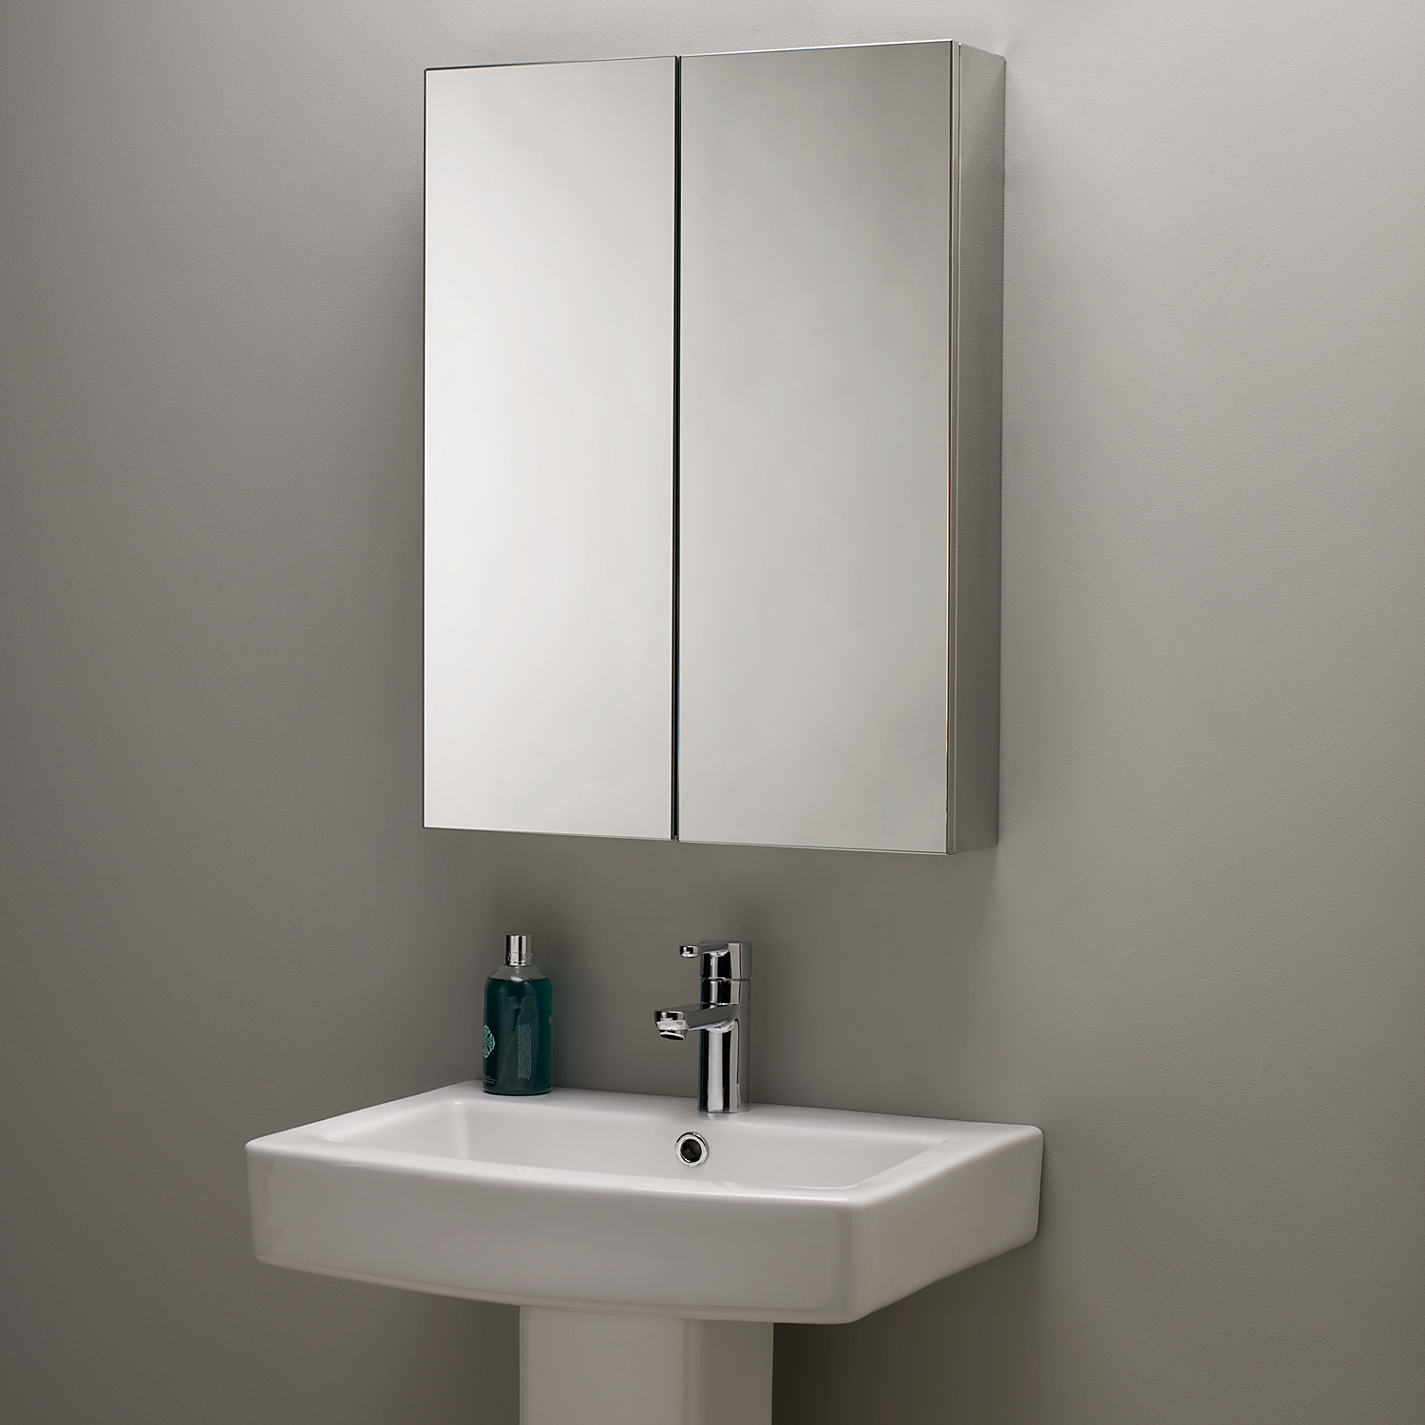 Bathroom Cabinet Mirrored Bathroom Wall Cabinets For Bathroom Vanities Ideas